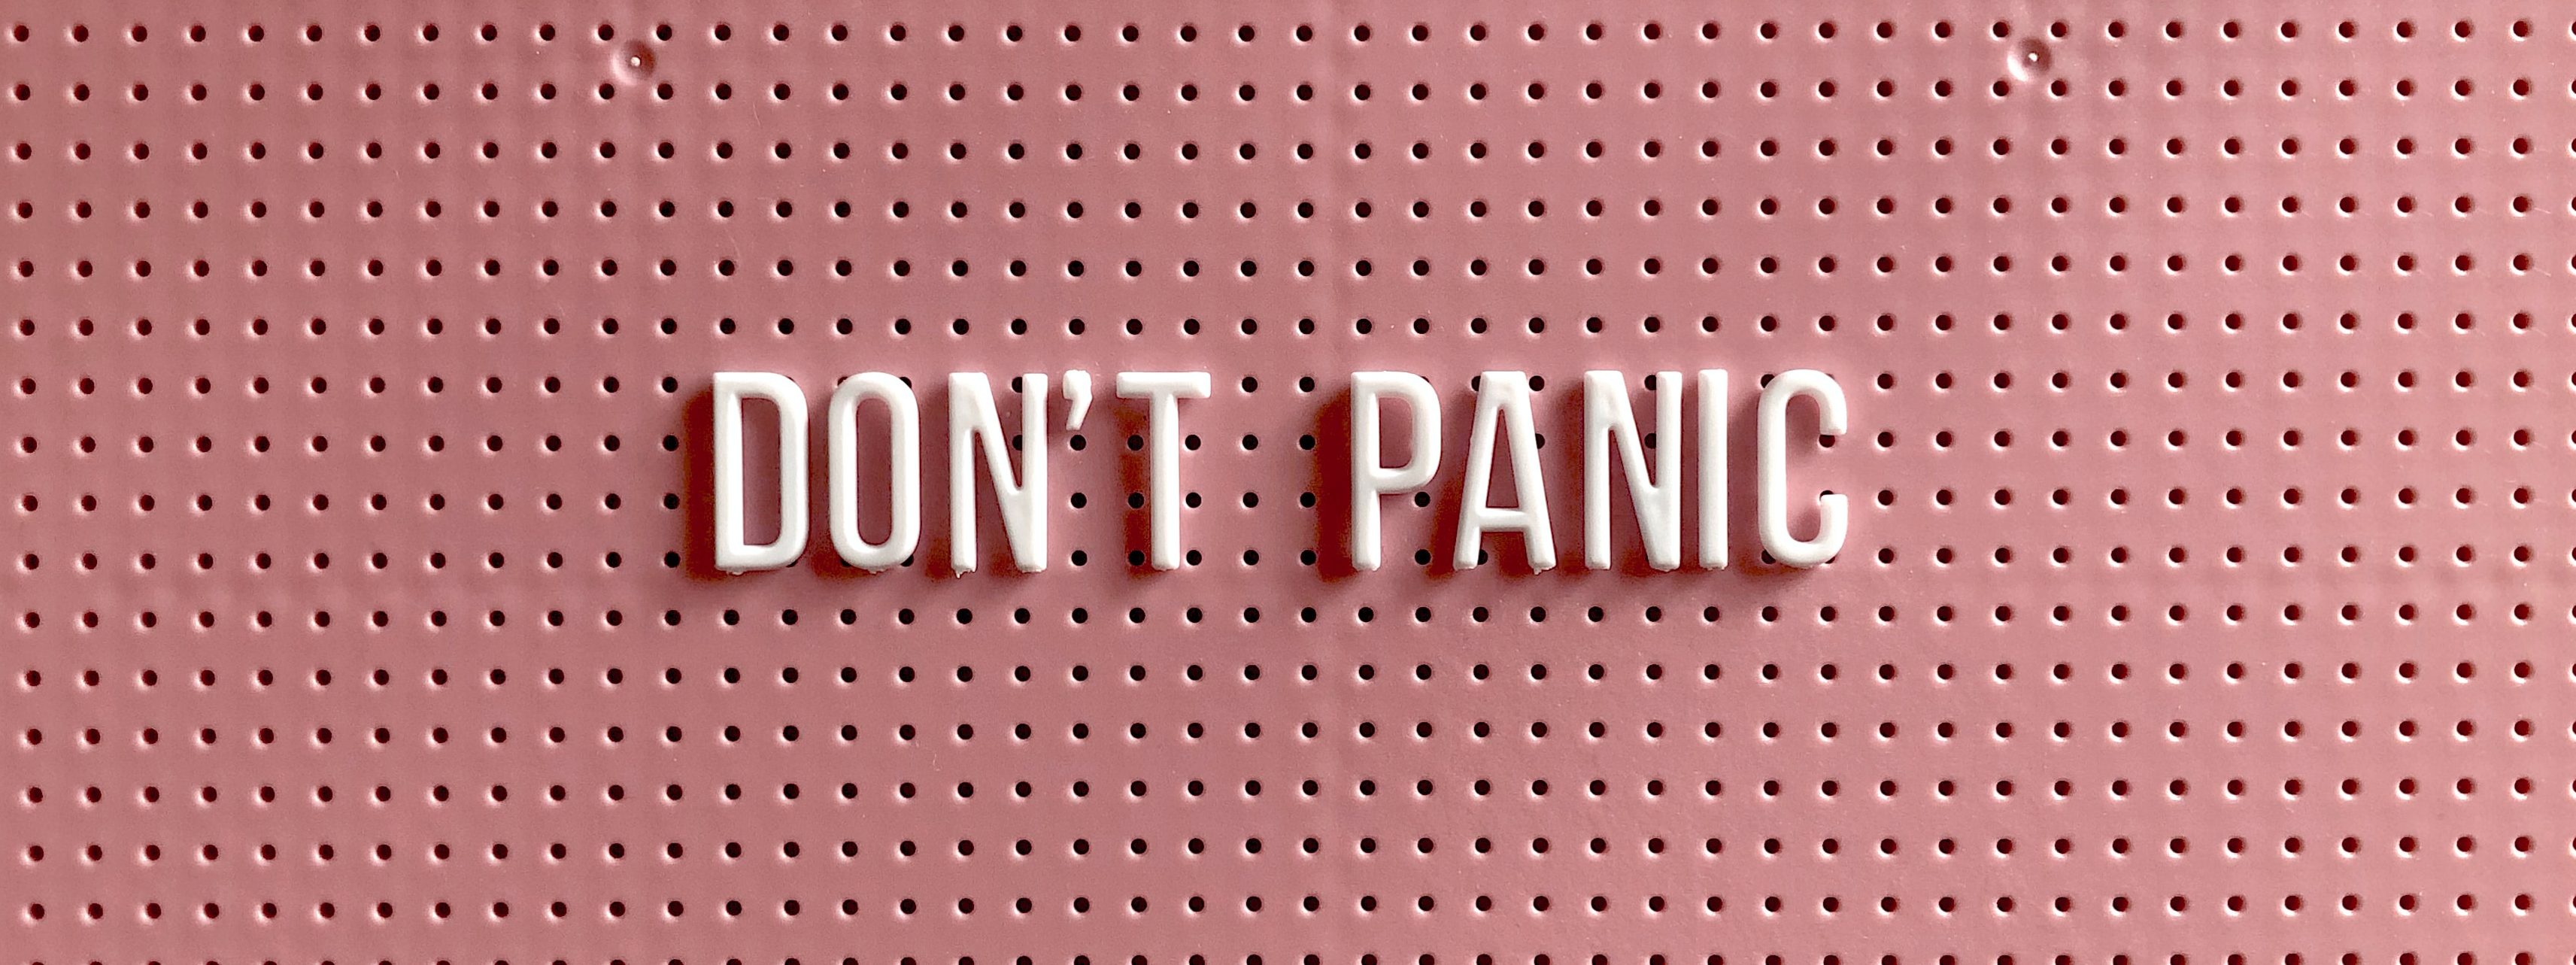 Image by Tonik. White letters on a peg board spell out 'Don't panic'.